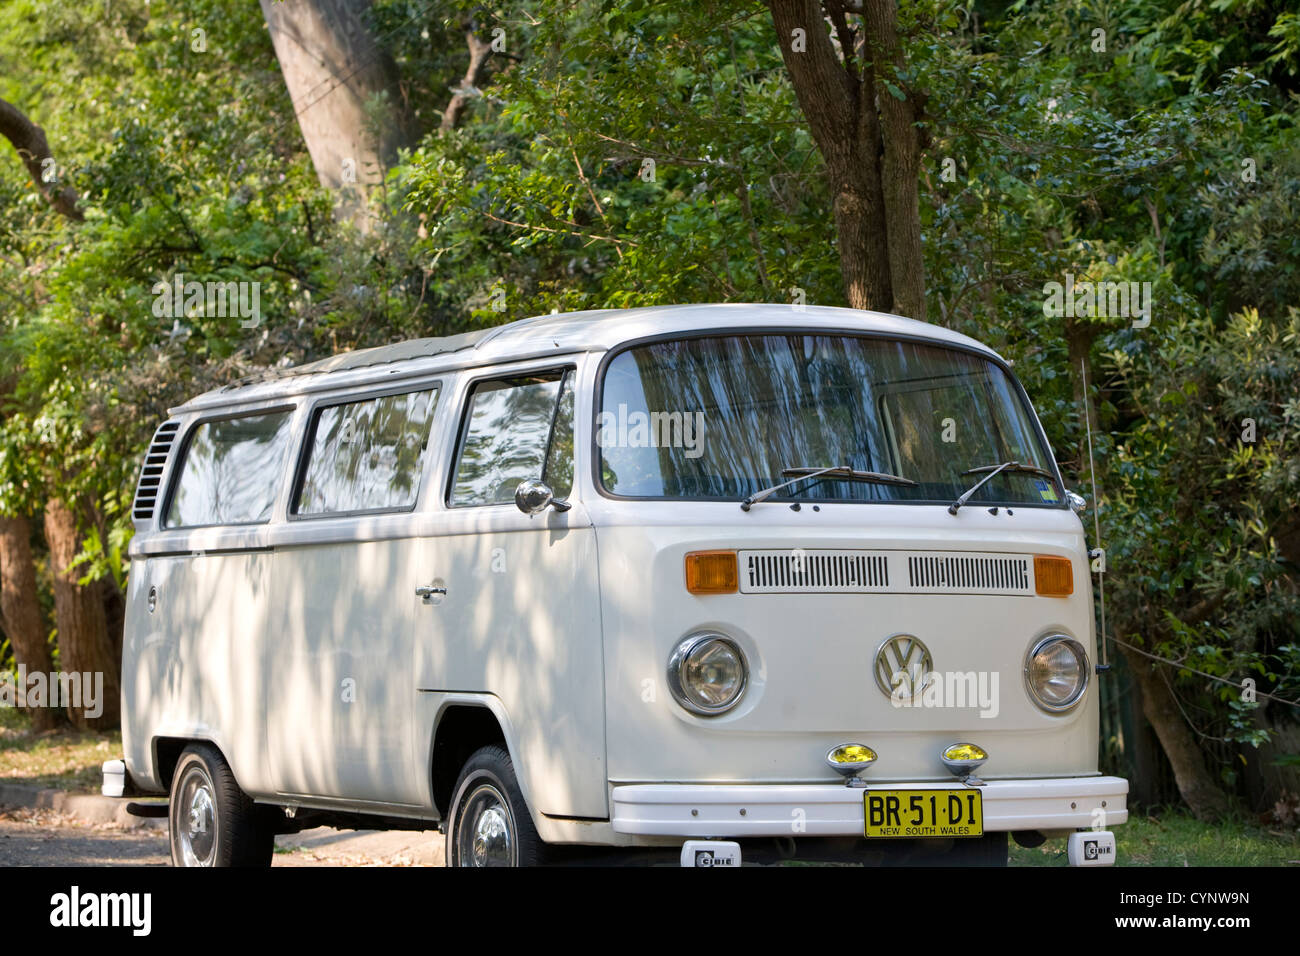 volkswagen vw kombi campervan, famous;y used by surfers and those travelling around australia - Stock Image